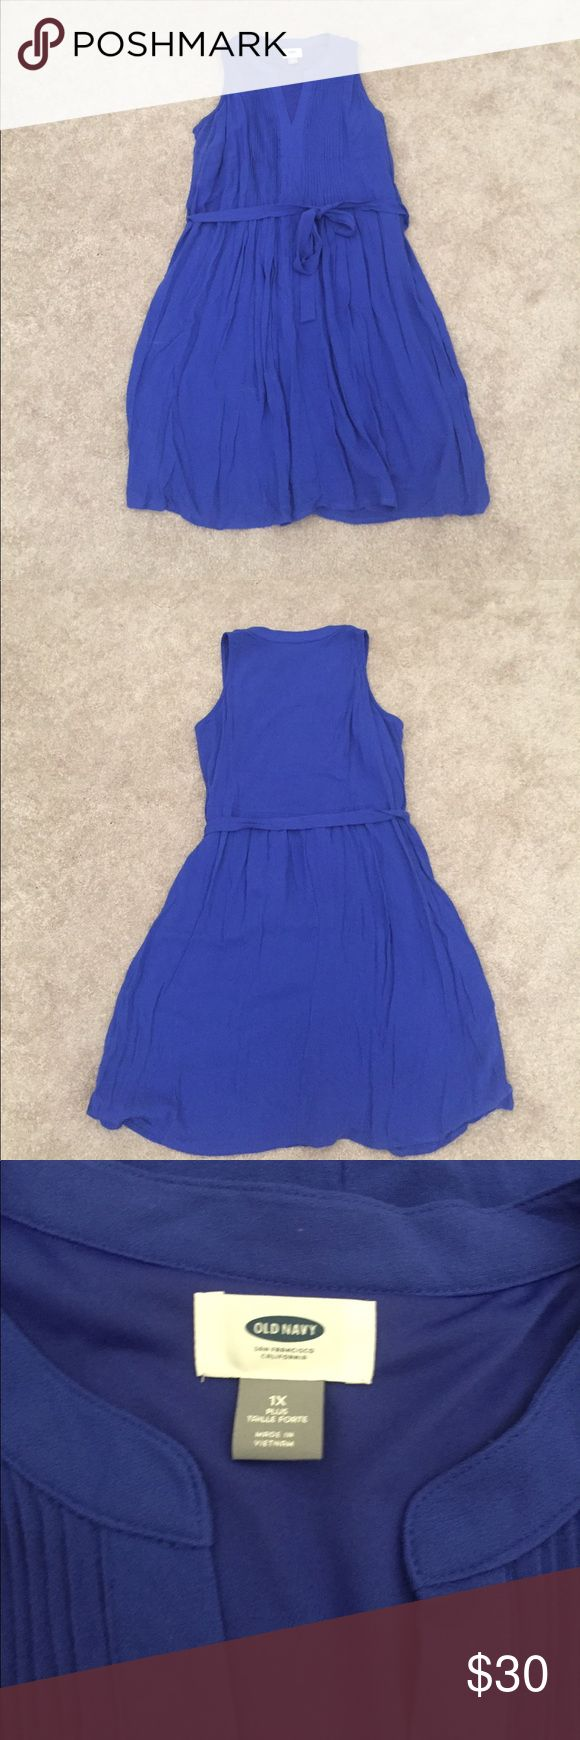 Old Navy Smocked Dress -1X - Royal Blue No tags, but never worn, Old Navy Smocked Top Dress!  Size 1X, beautiful blue color. Bought from the plus section of the site. Has a tie that can be removed. Shows some deodorant under arms from trying it on. Old Navy Dresses